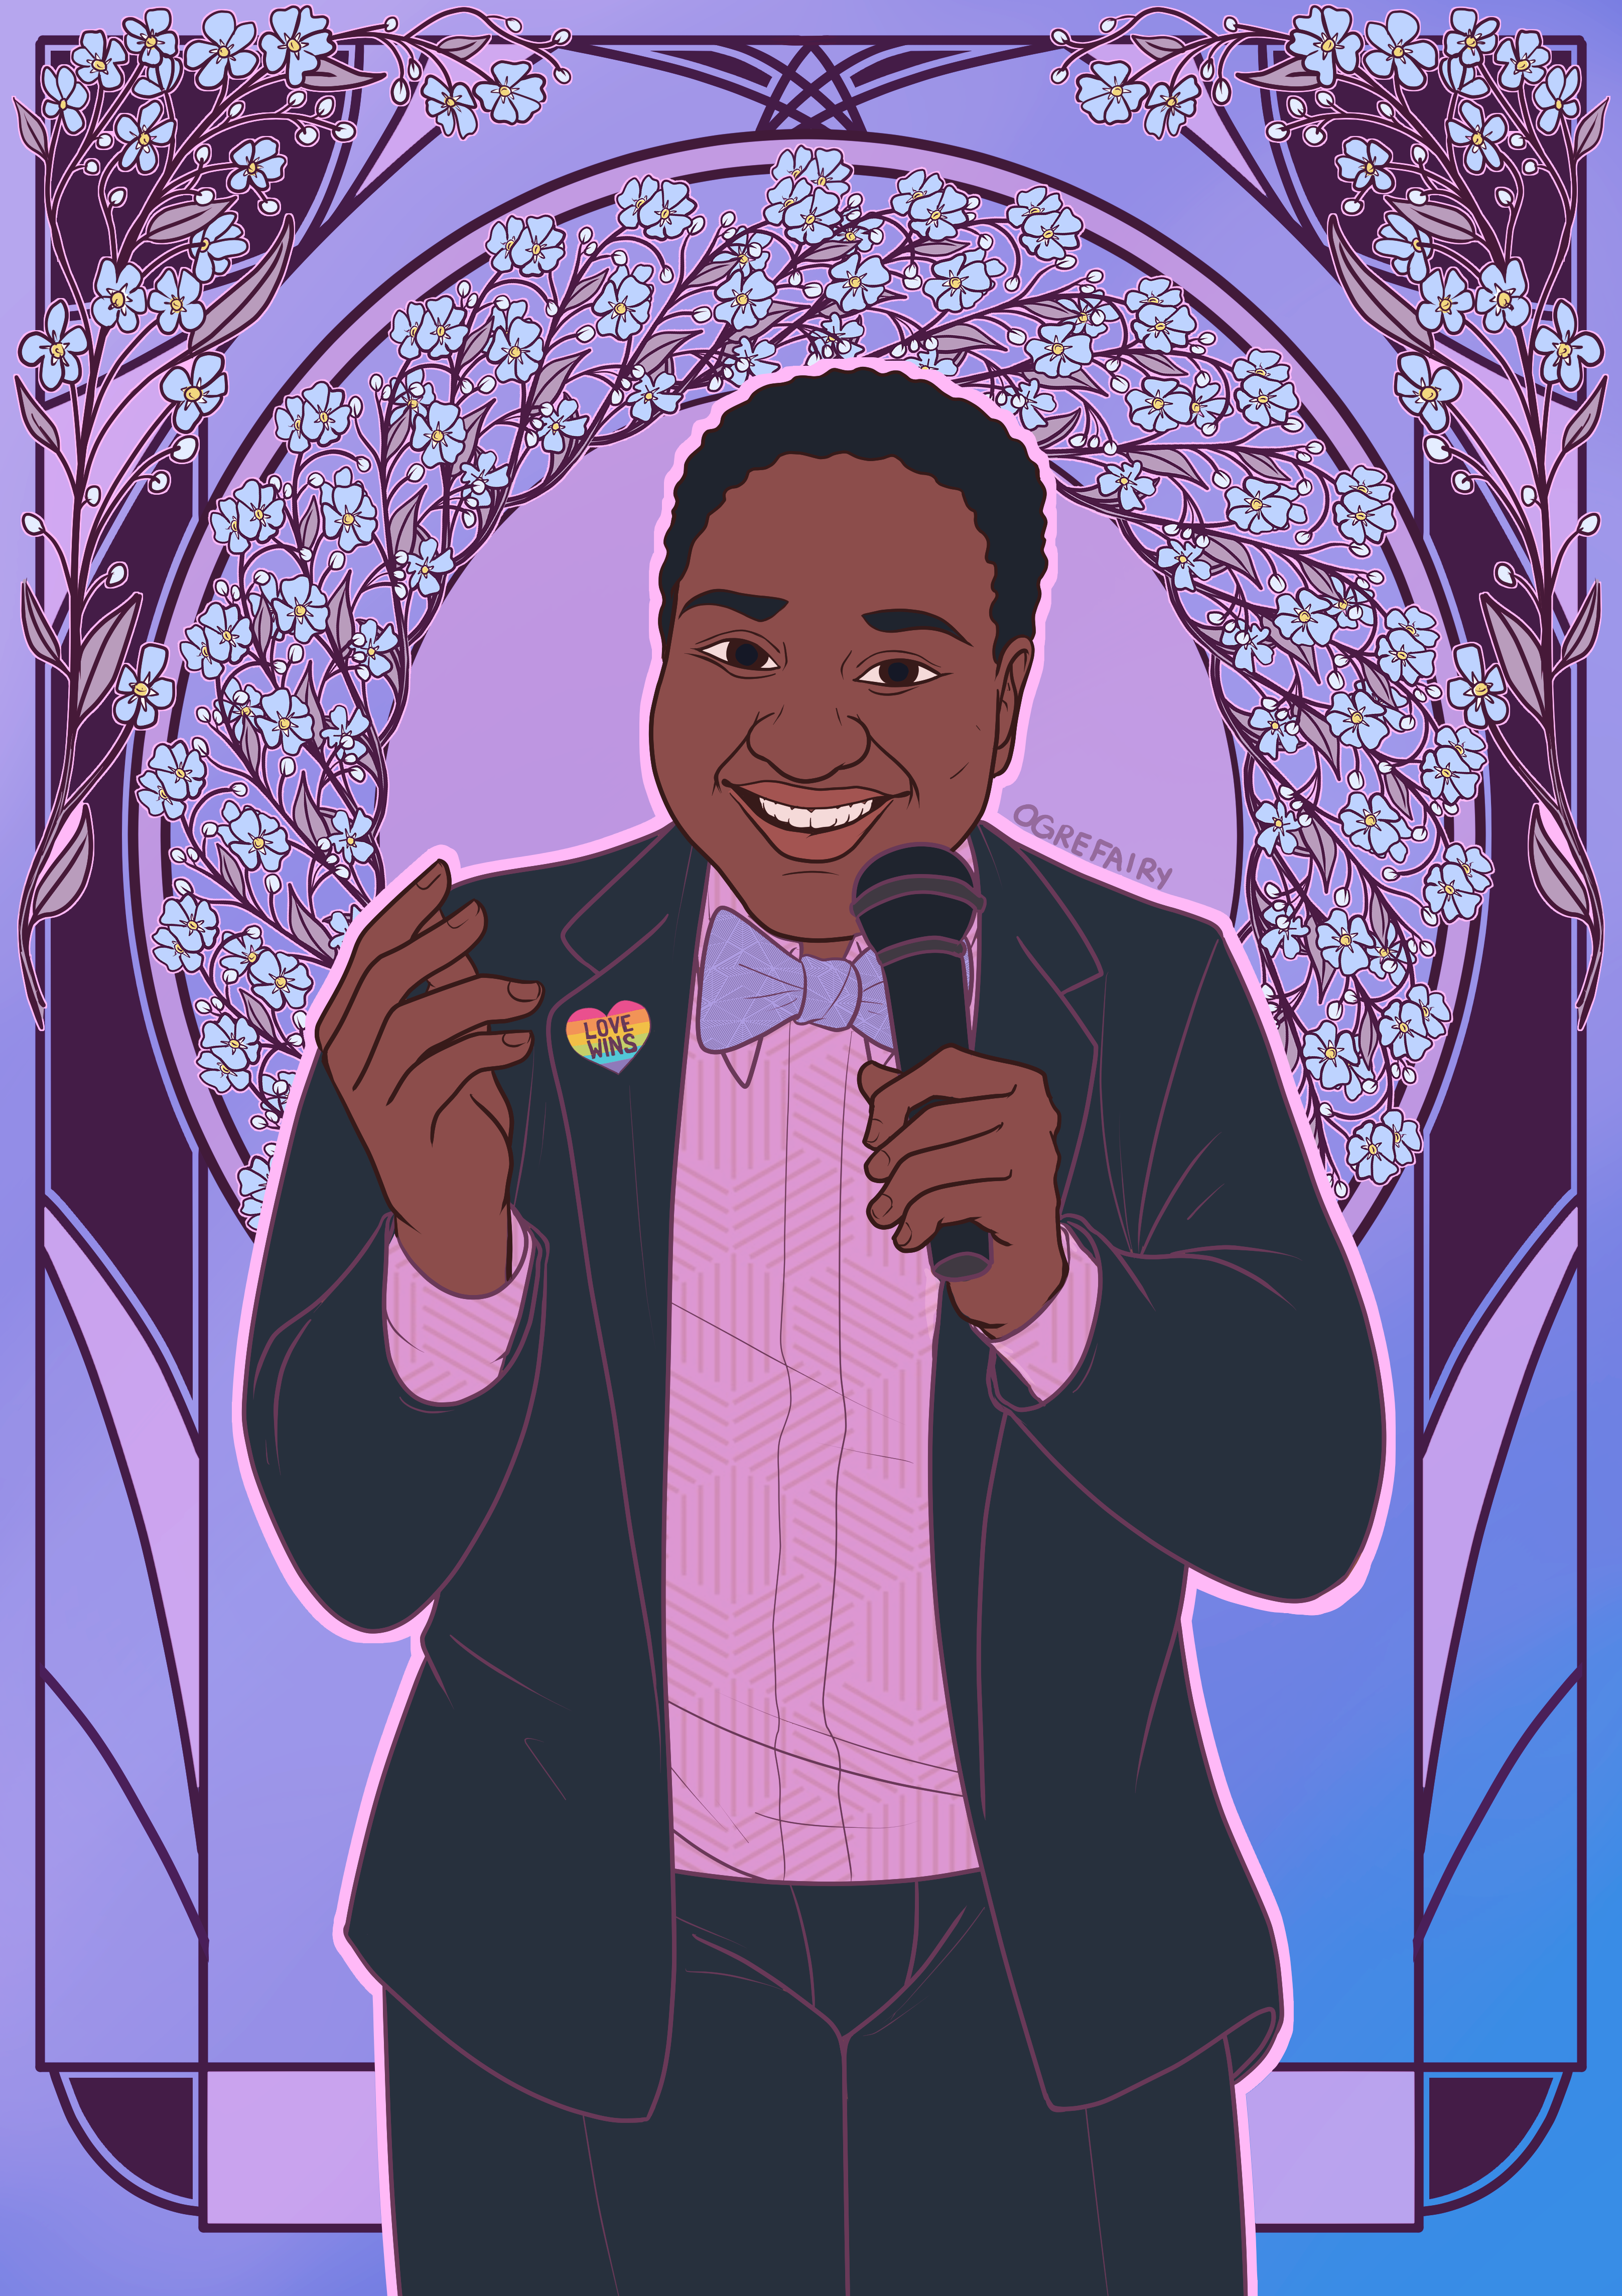 "A cartoon of Ki'Tay, a black, disabled Trans man, wearing a suit and bow tie, and a Pride pin in the shape of a rainbow heart with the words, ""LOVE WINS"" on it. He is smiling while holding a microphone. He is surrounded by a floral ring that arches from his left shoulder over his head to his right shoulder. With a purple and blue background and more decorative flowers."